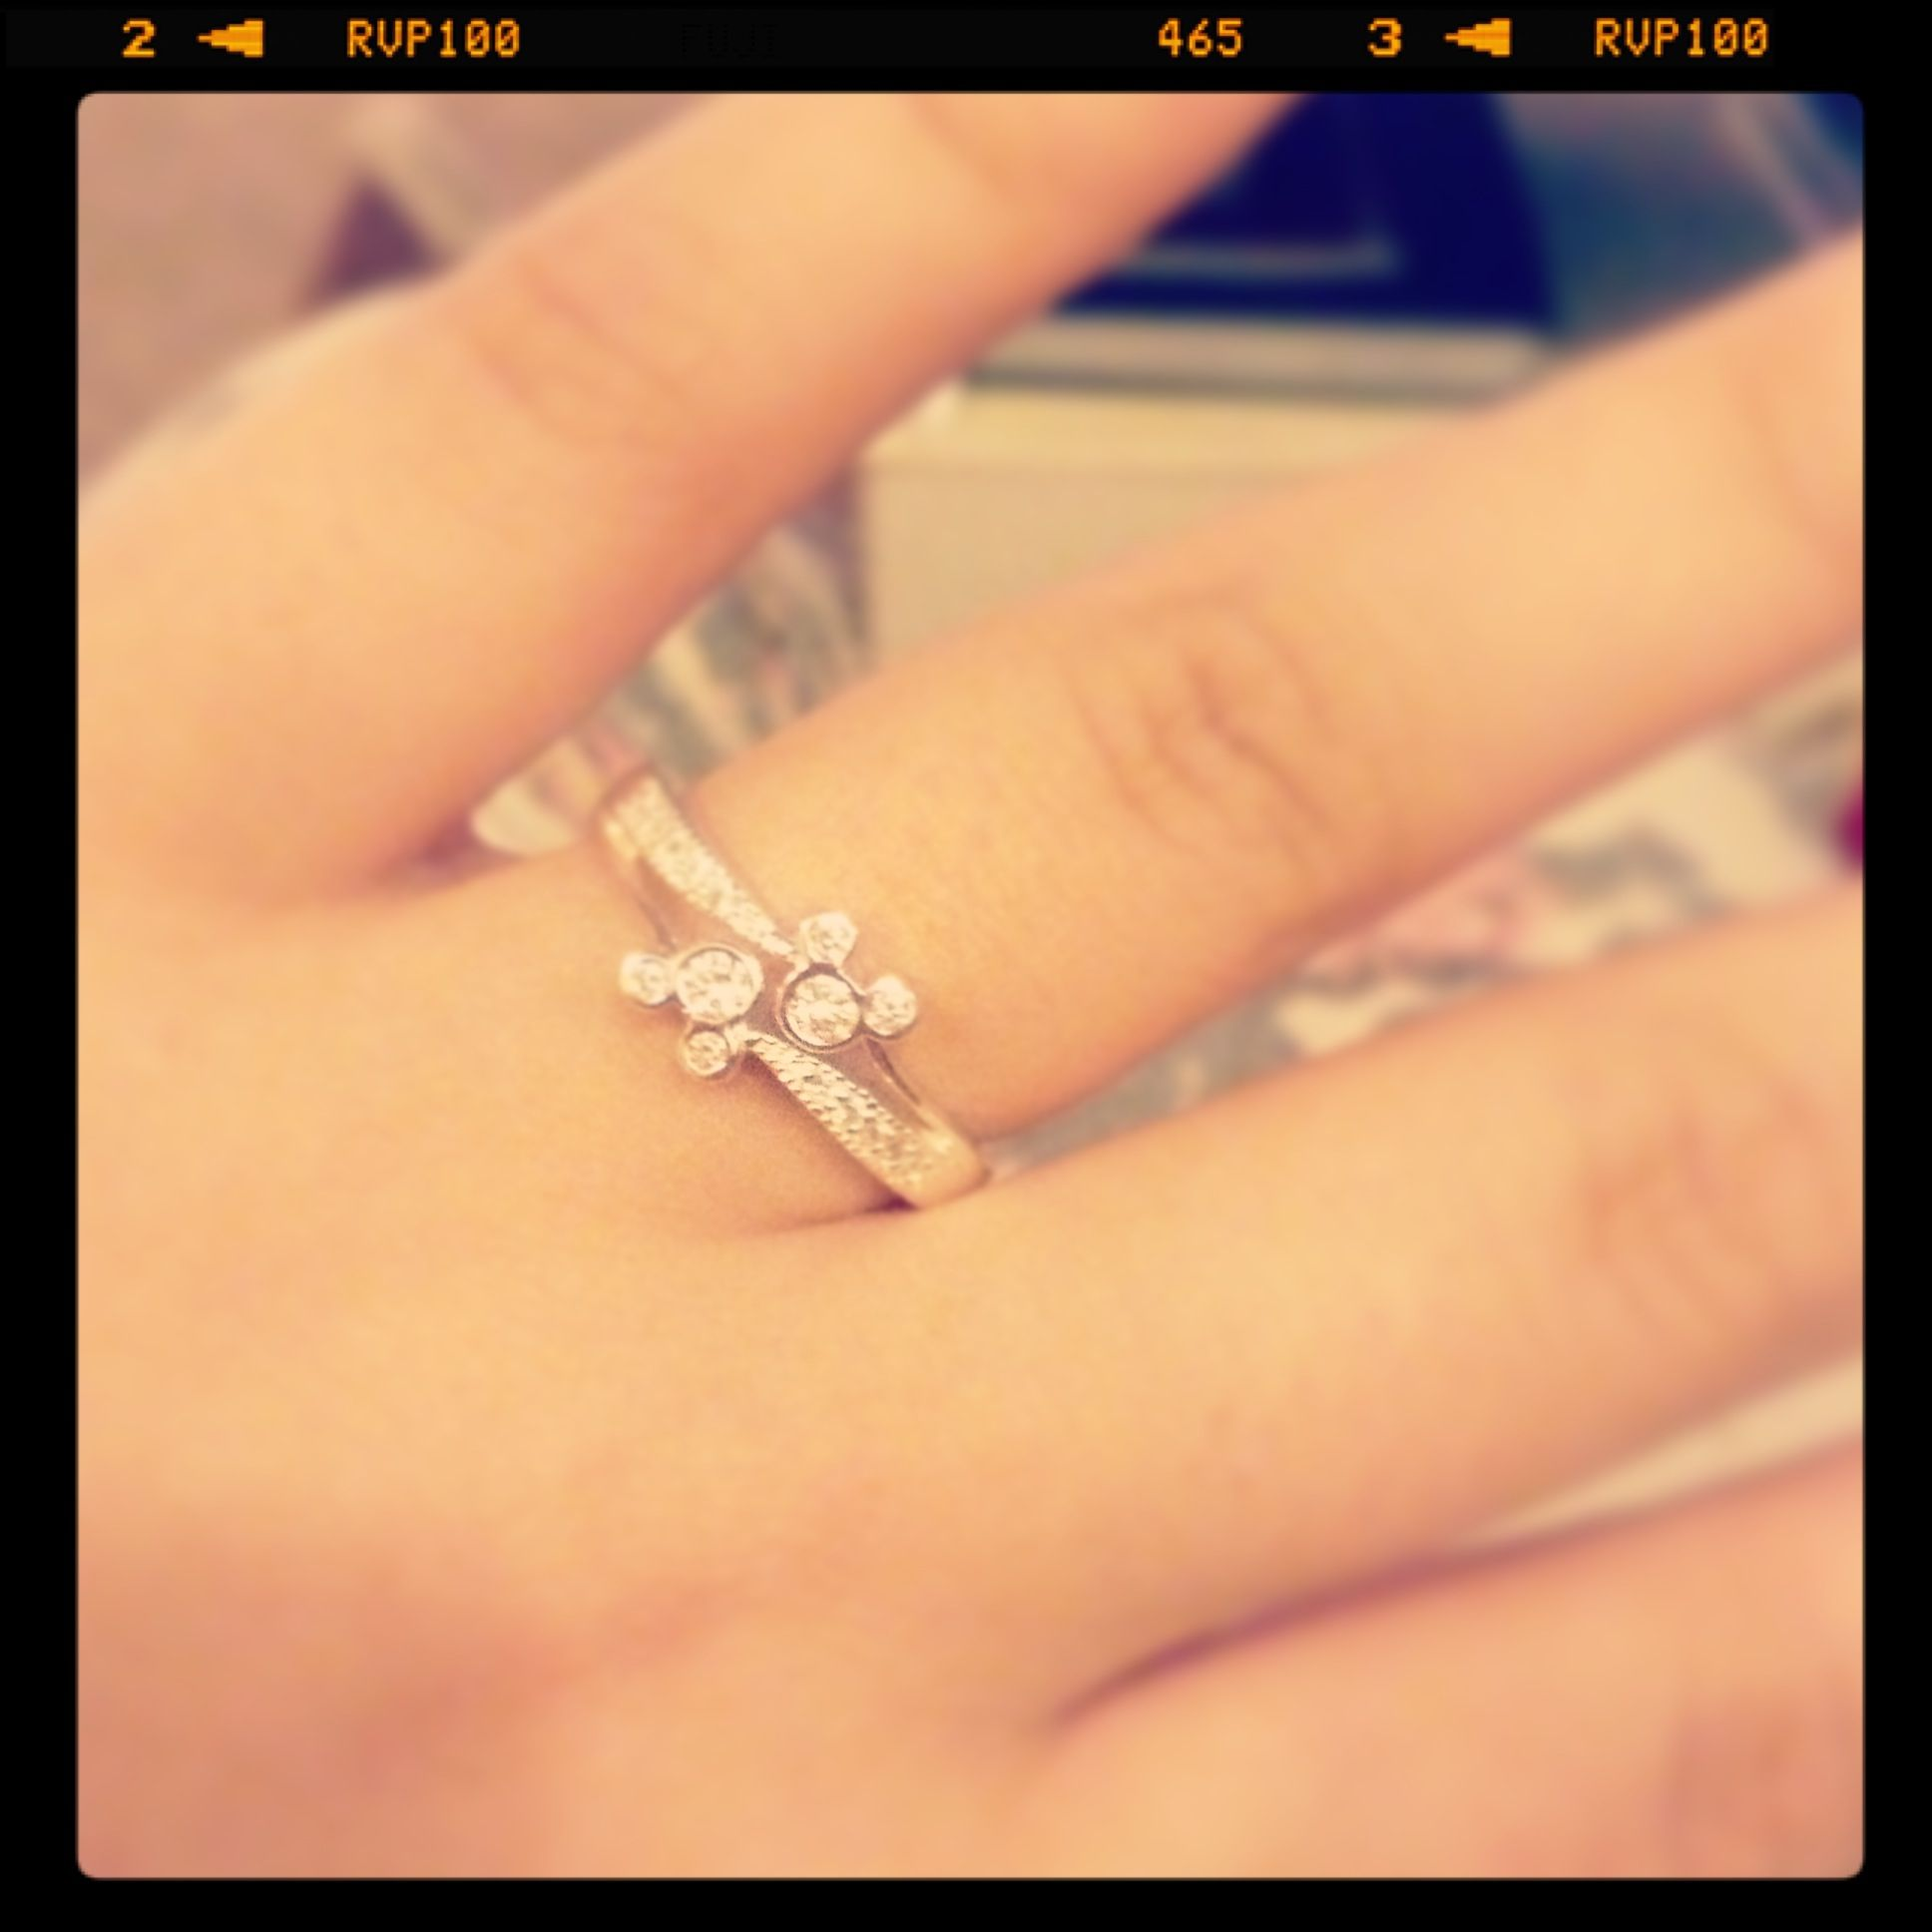 he got me a promise ring